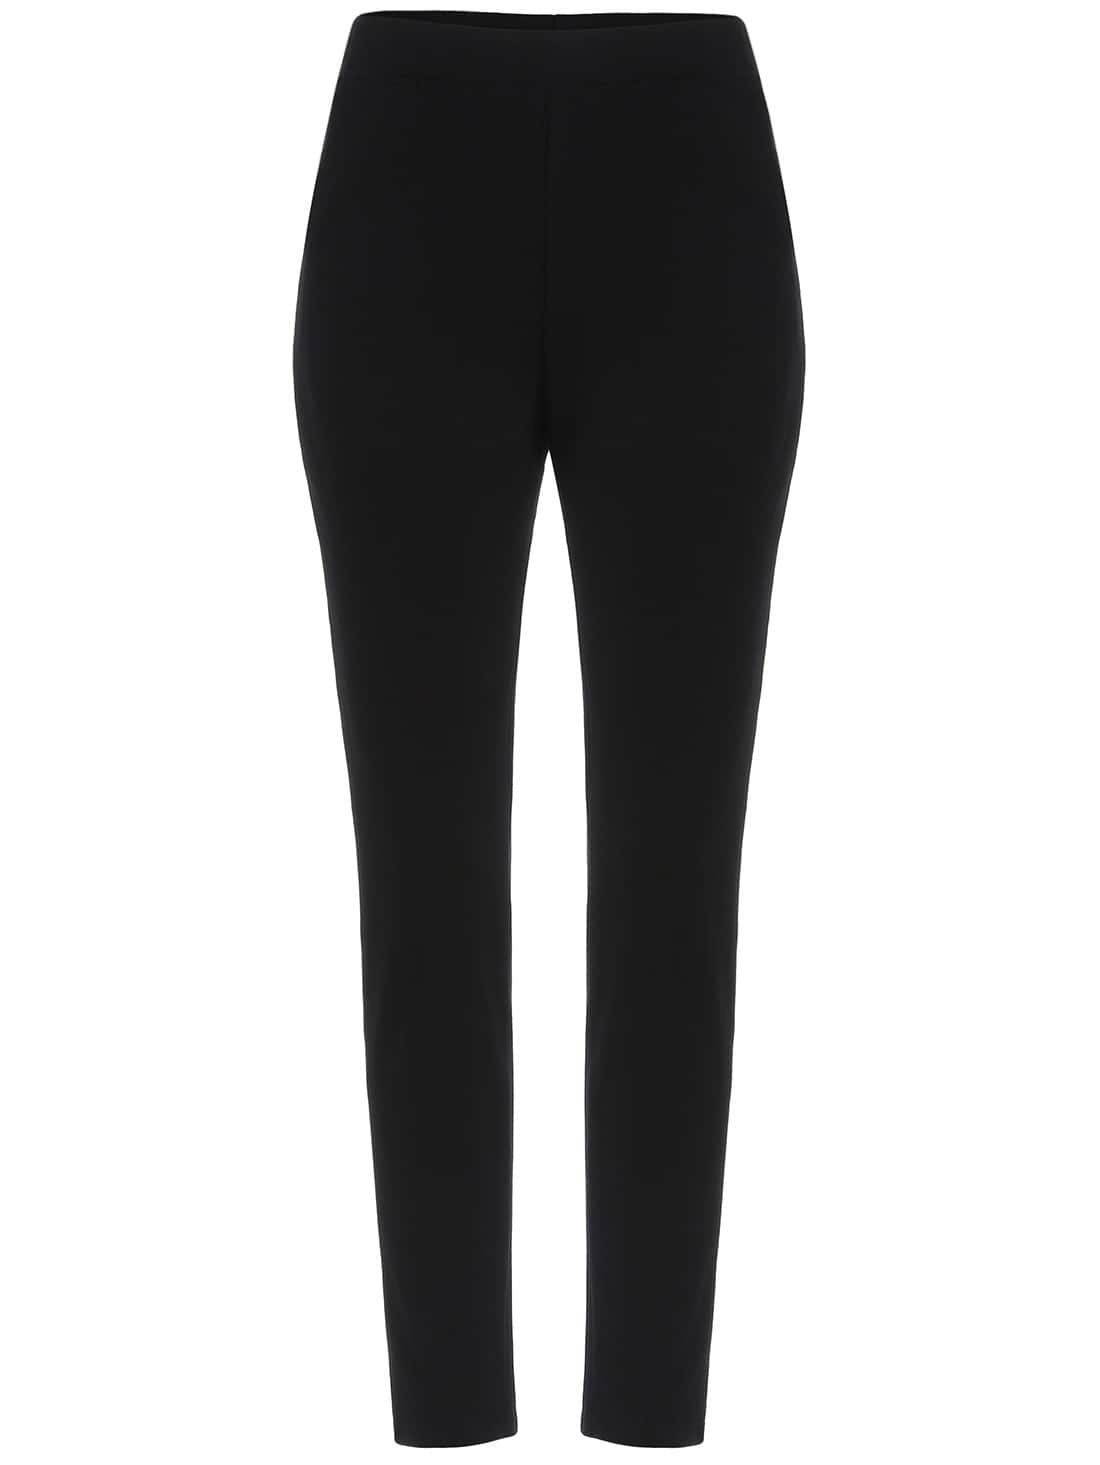 Casual Slim Pencil Pant